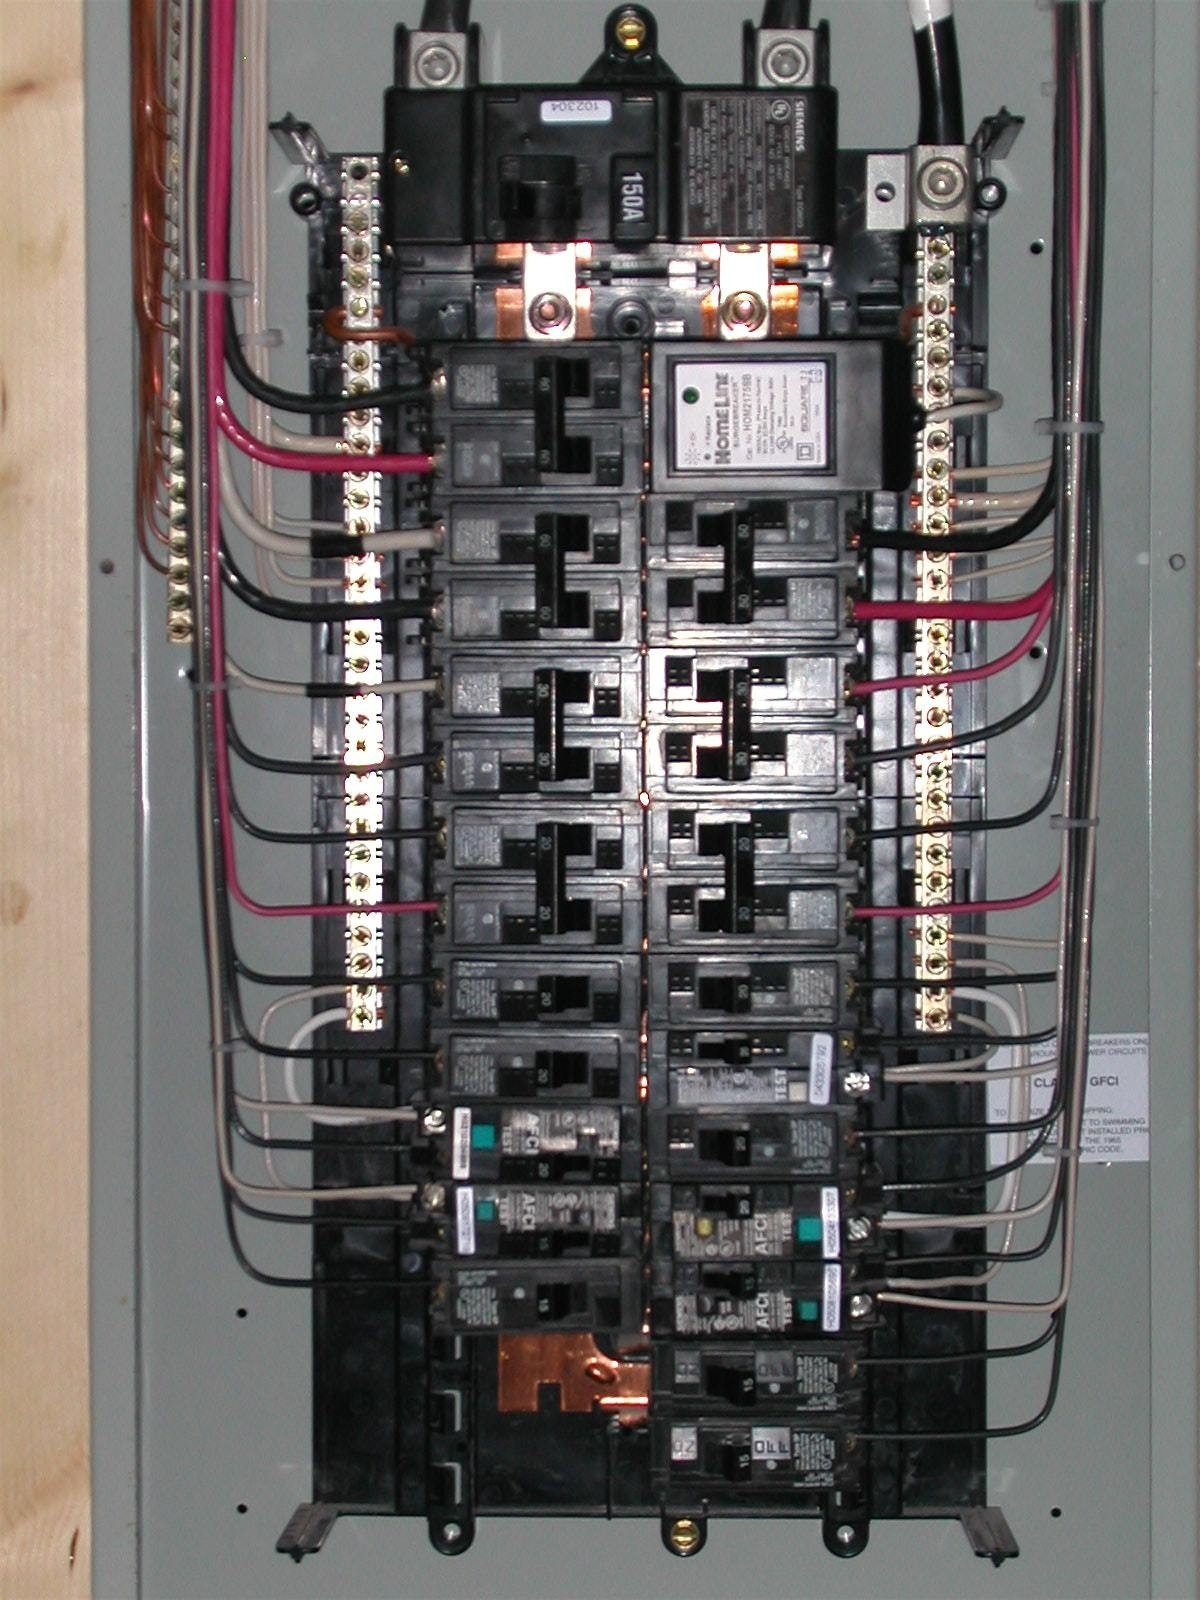 Gfi Circuit Breaker Wiring Diagram Free Download Wiring Diagrams